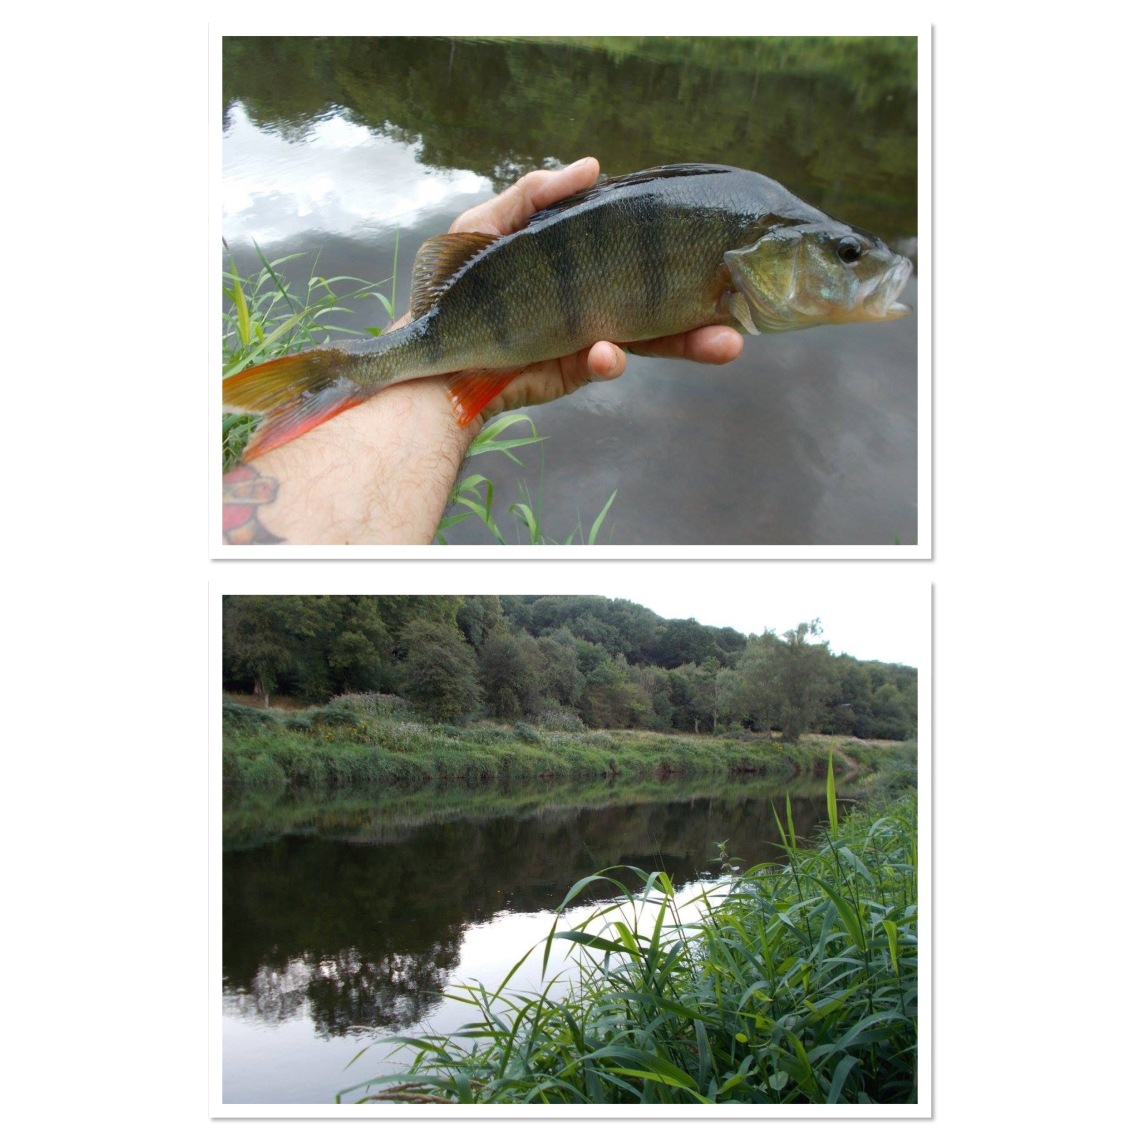 Perch fishing on the middle Severn